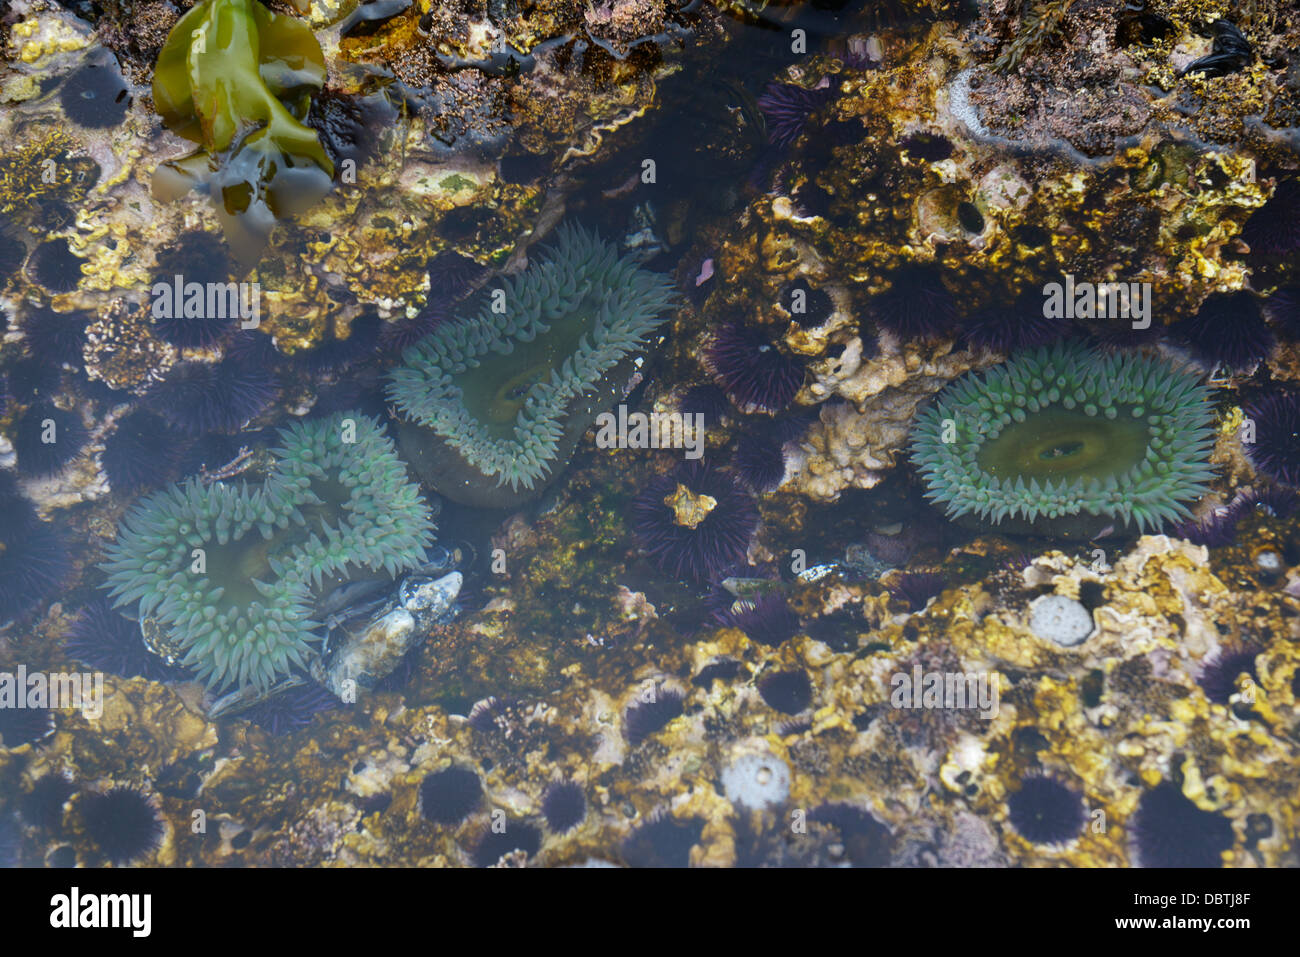 Tidepools with anemones, Point Lobos State Natural Reserve, CA - Stock Image